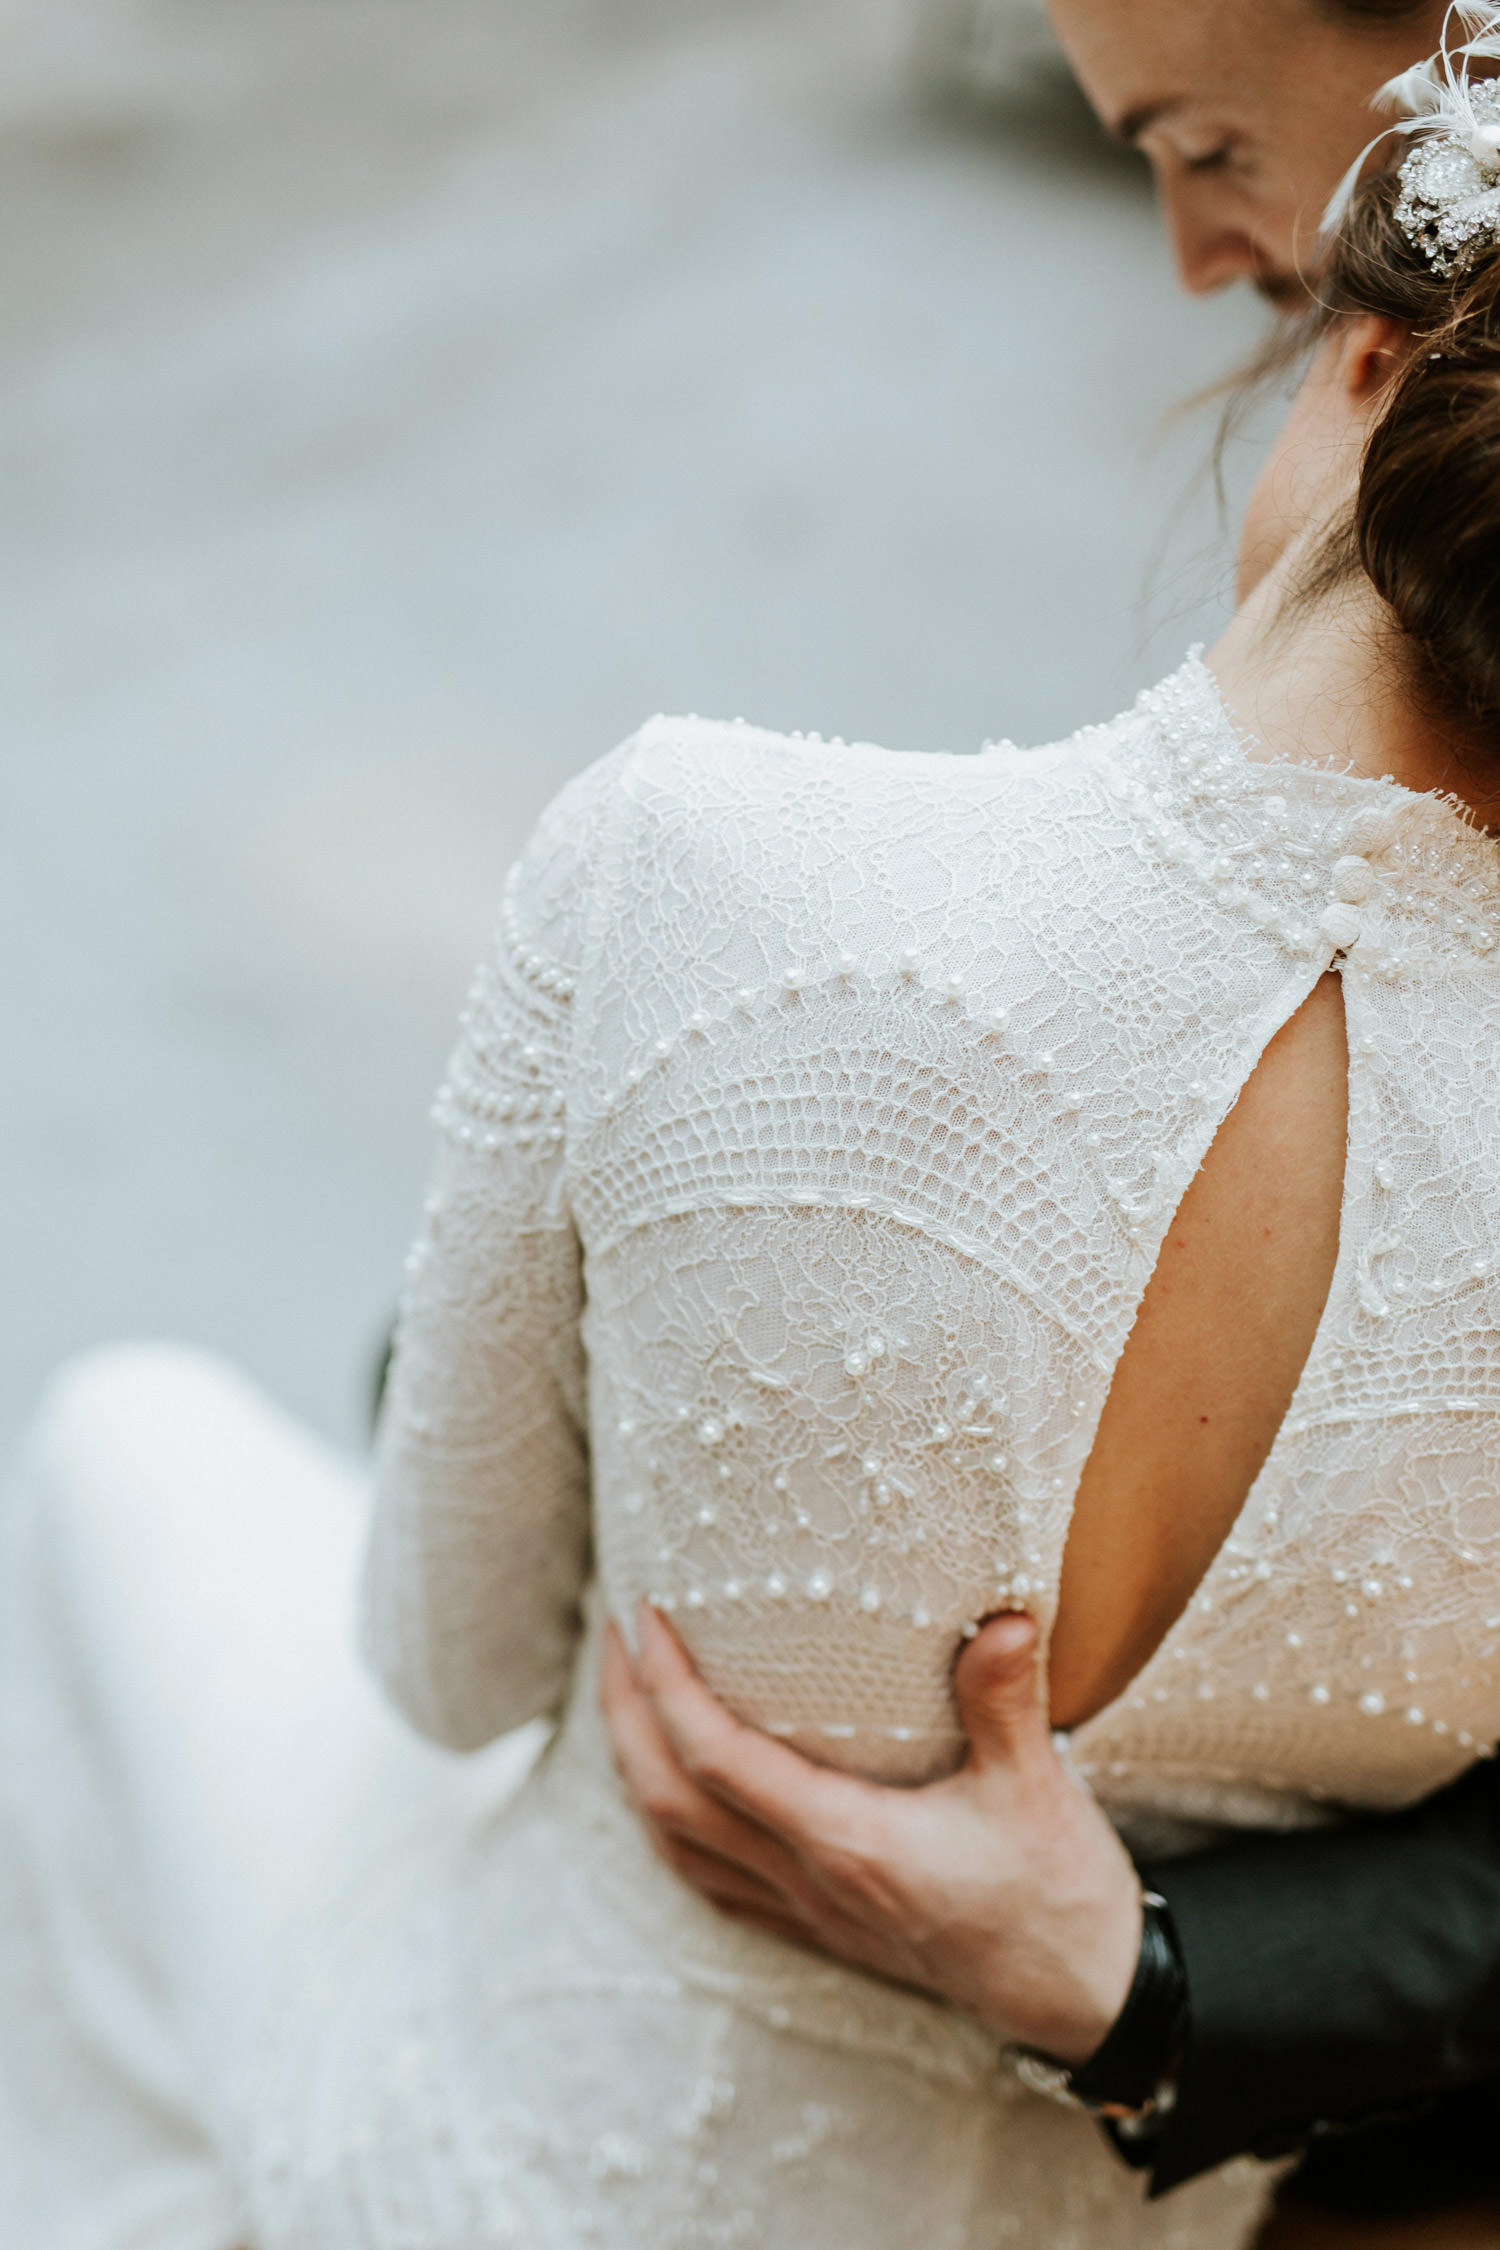 artistic close up photograph of the detail of bride's dress